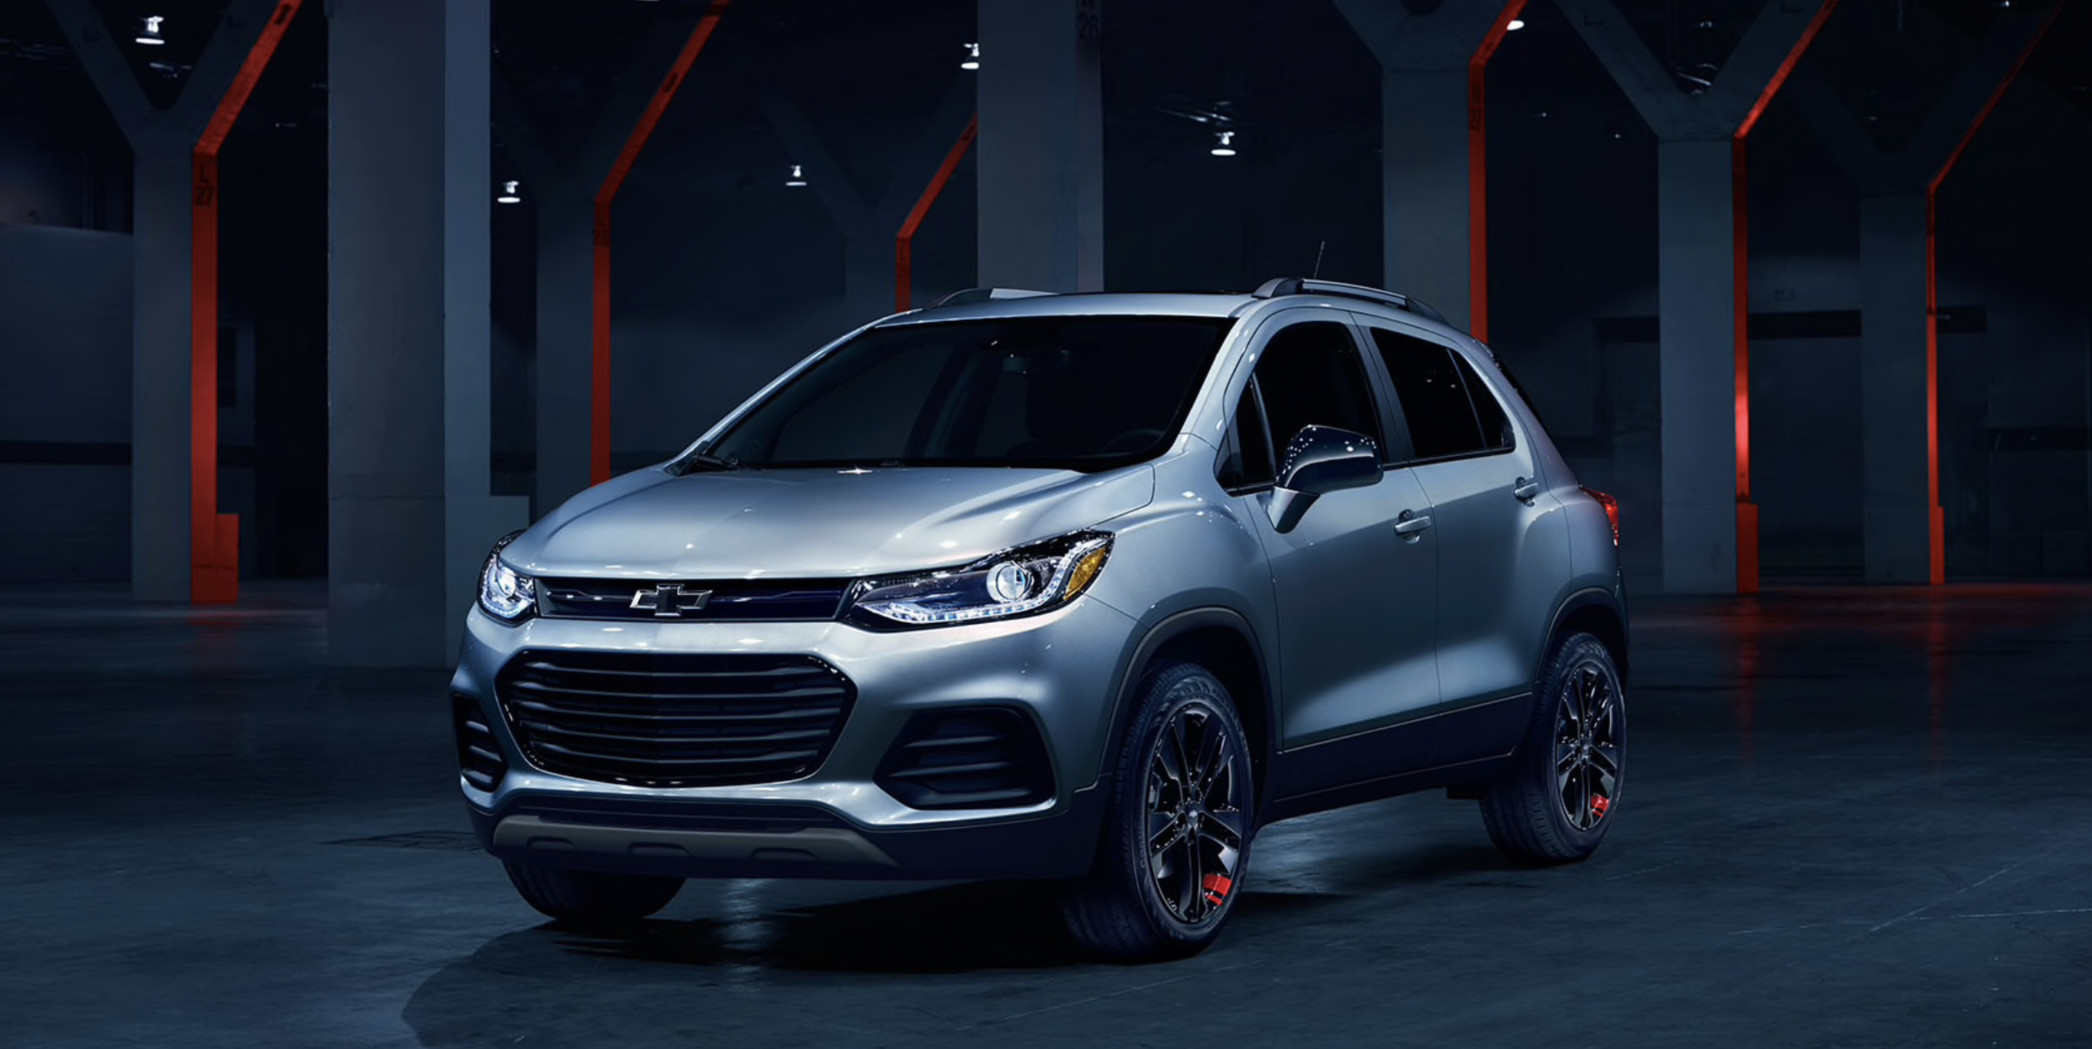 2020 Chevrolet Trax for Sale near Downers Grove, IL